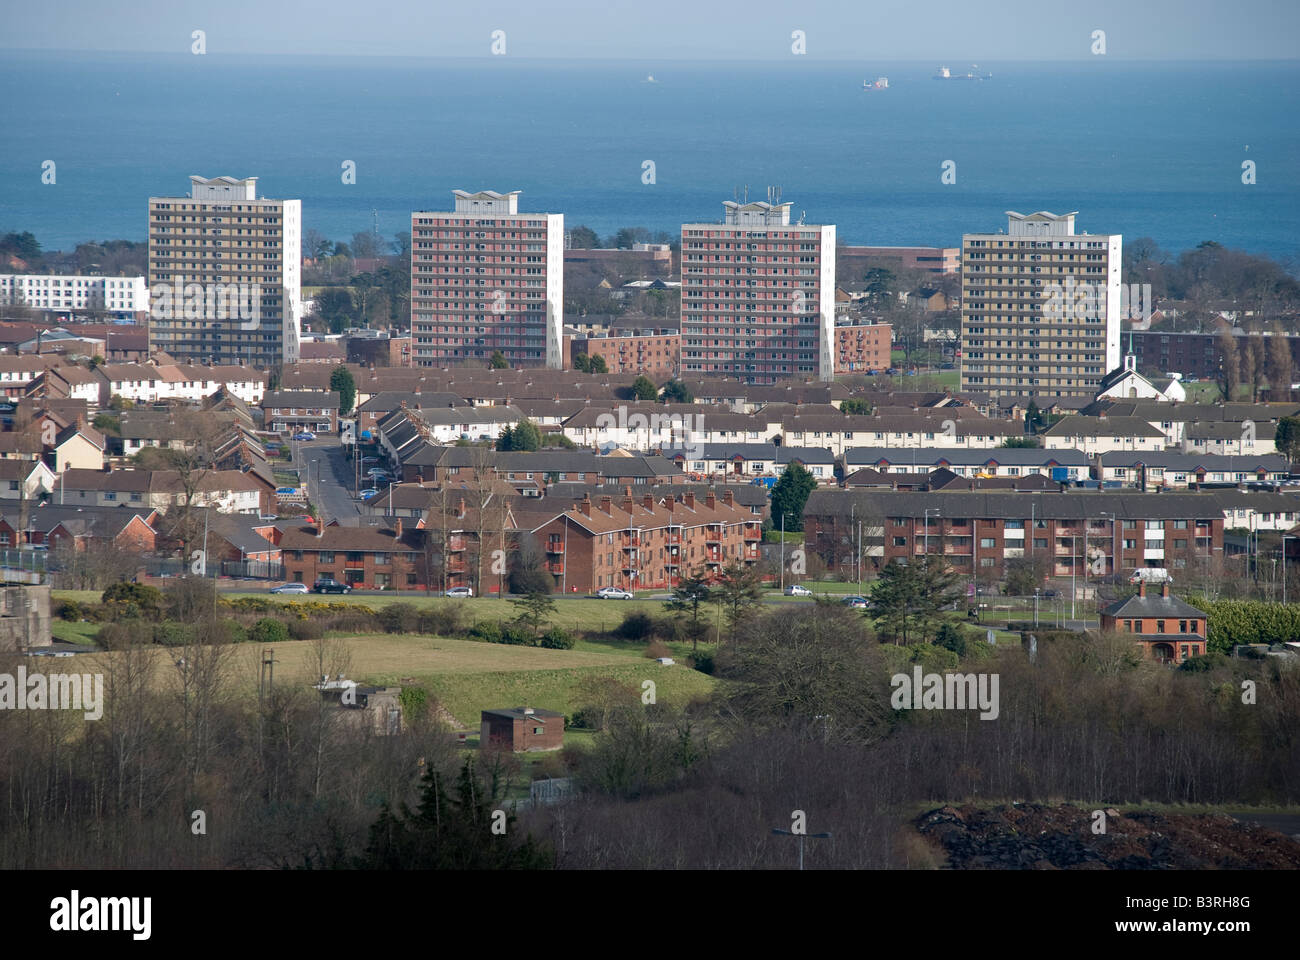 Rathcoole Housing Estate, started in the 1950s and completed in the 1960s, Newtownabbey - Stock Image